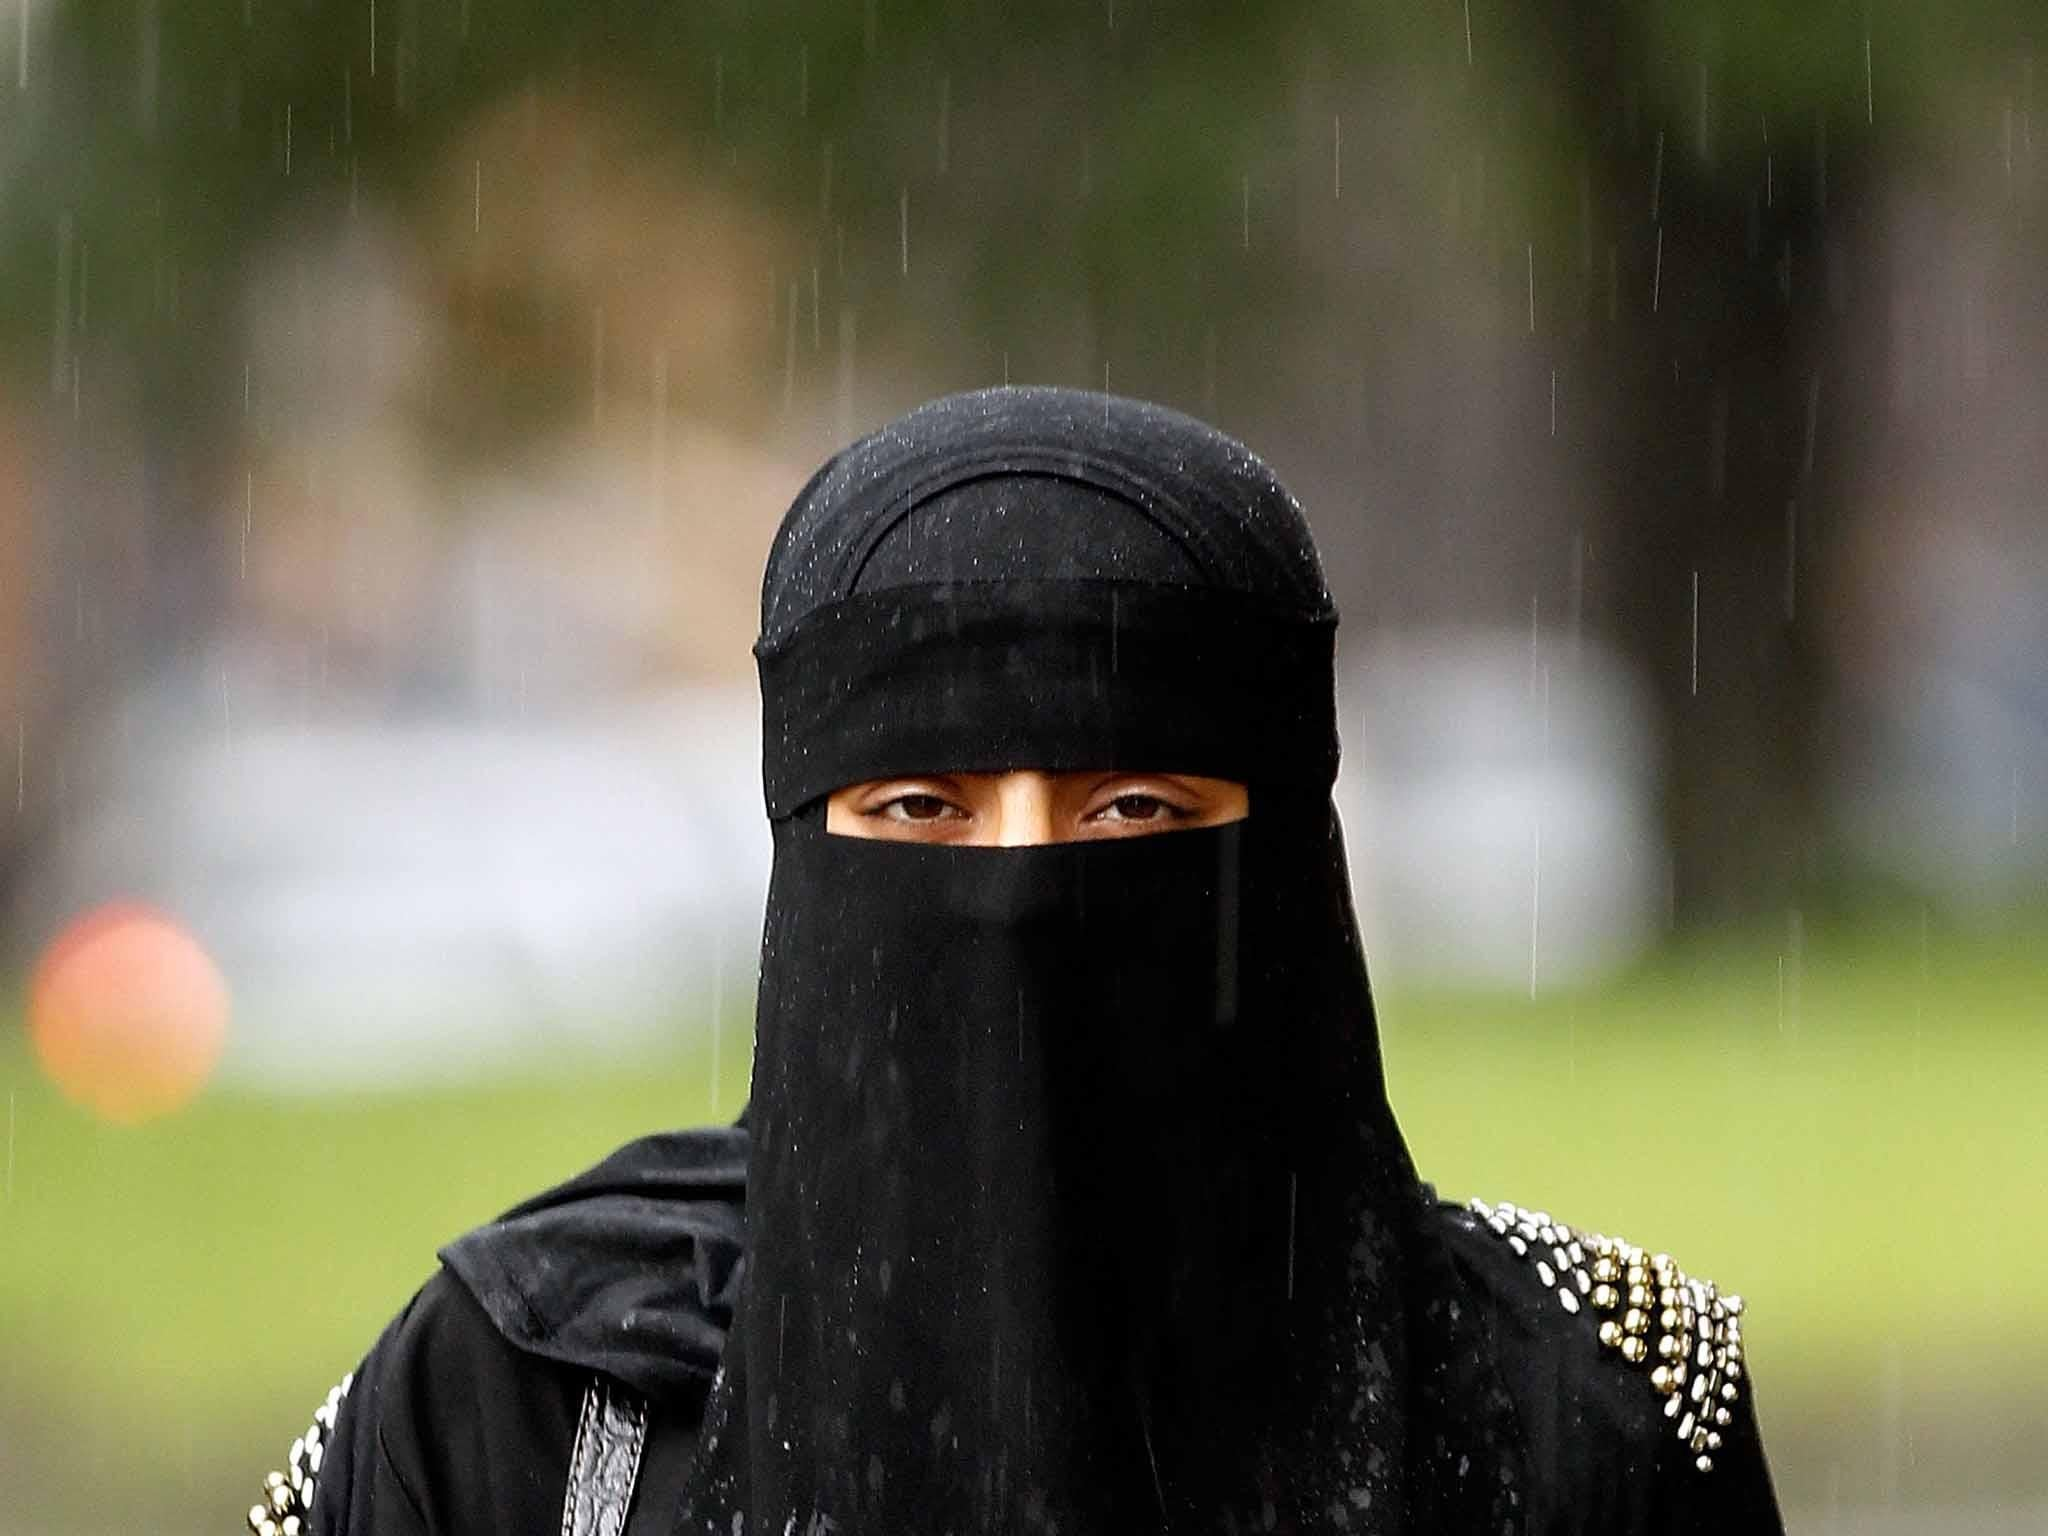 Extreme Islam What Makes A Young British Woman Turn To Salafism The Independent